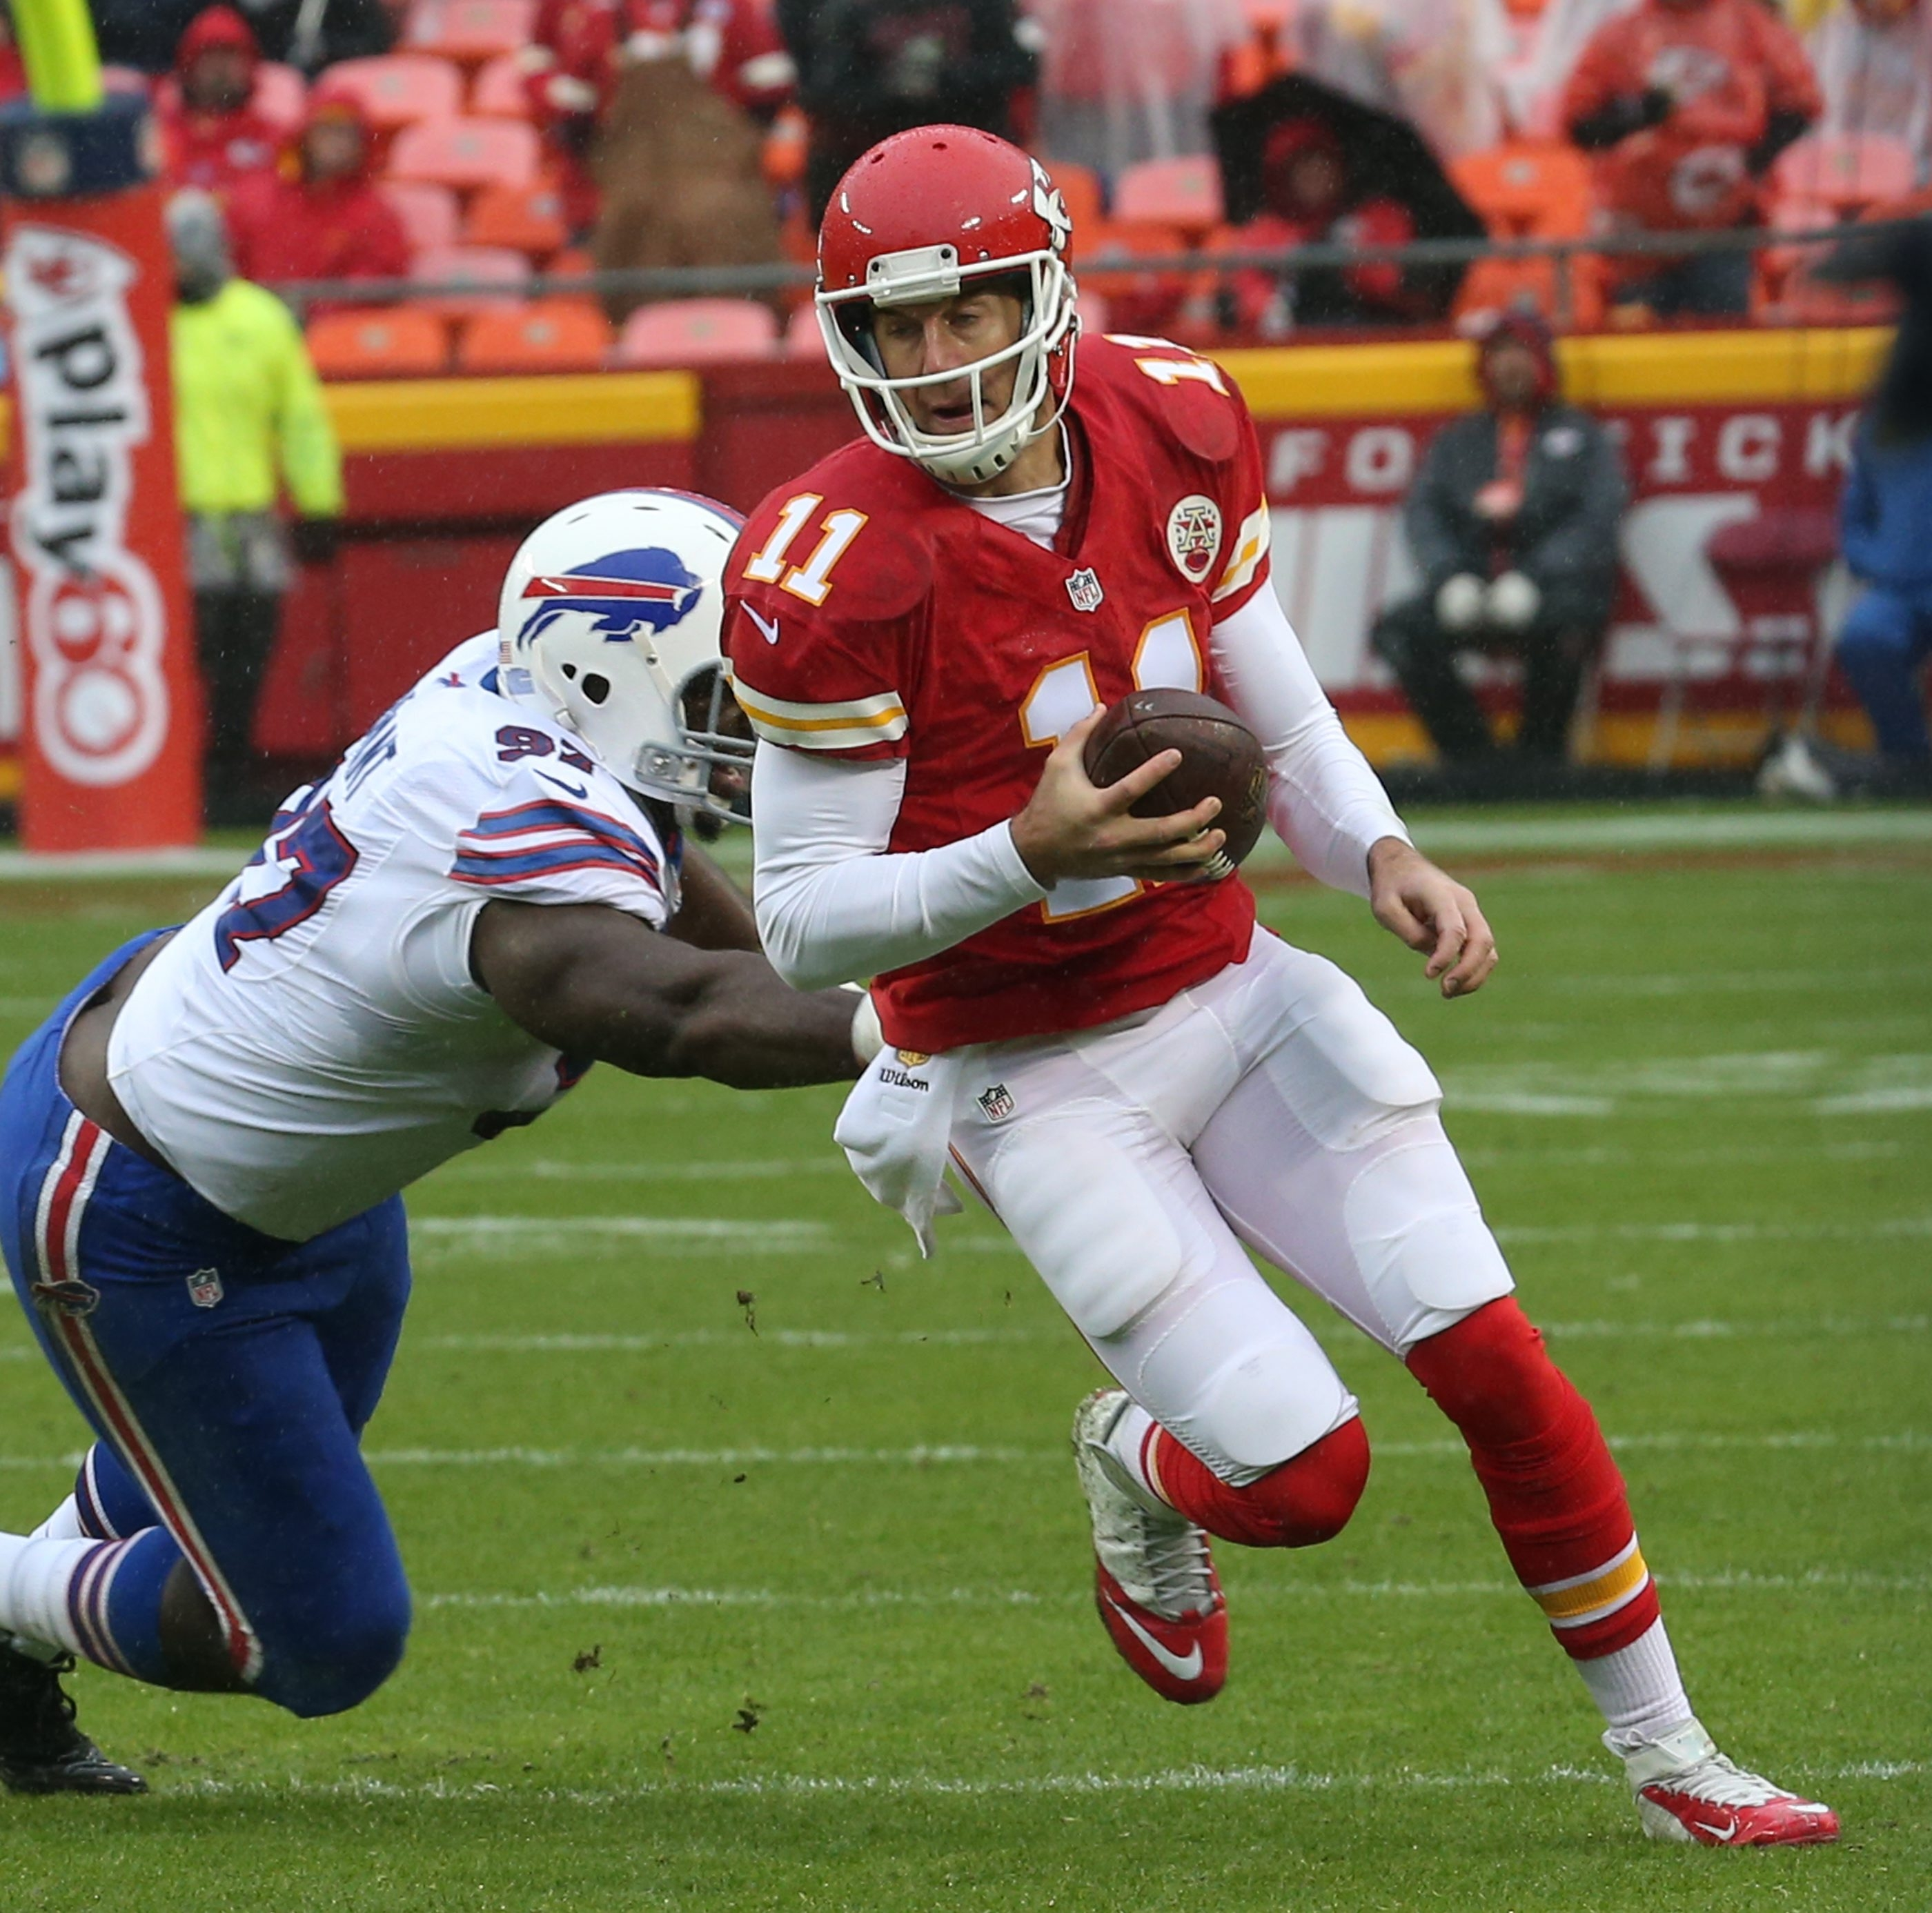 Chiefs quarterback Alex Smith eludes Bills defensive tackle Corbin Bryant for a first down in the second quarter.